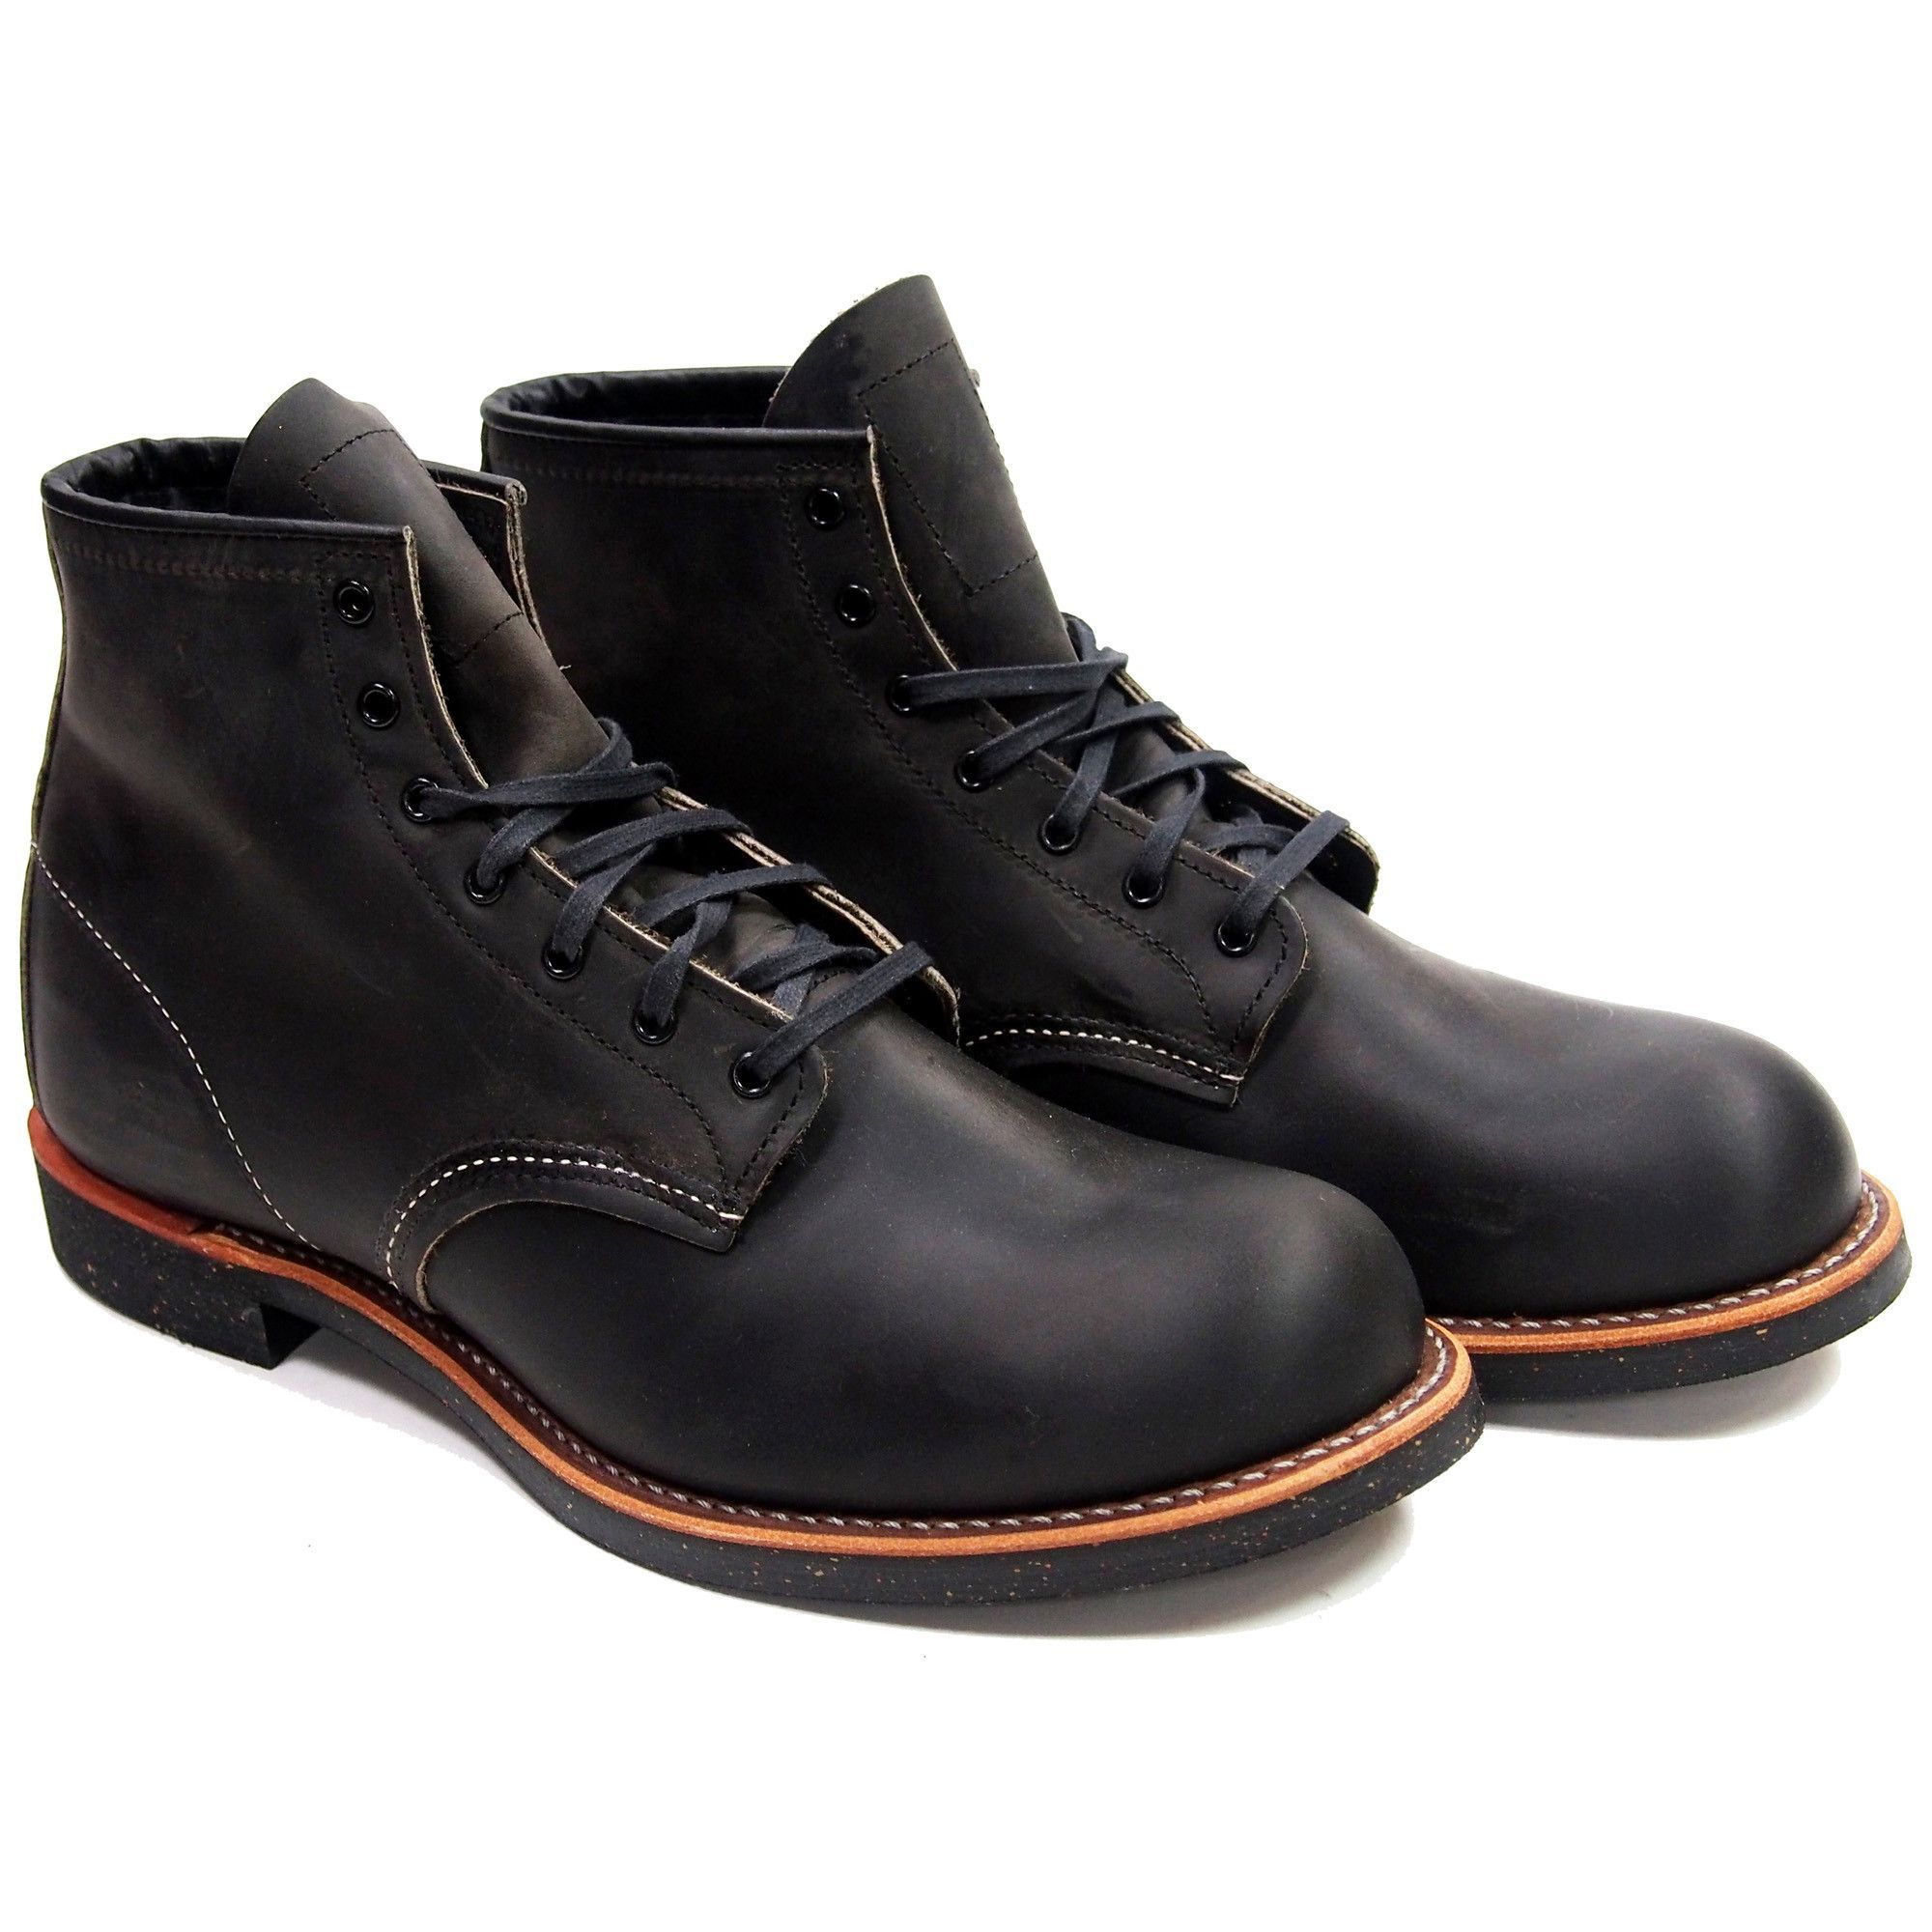 STYLE NO. 3341 : BLACKSMITH Famous for its clean lines, simple construction and classic round toe styling, the 3341 features Charcoal Rough & Tough leather, a Vibram® 430 Mini-lug outsole, triple stit